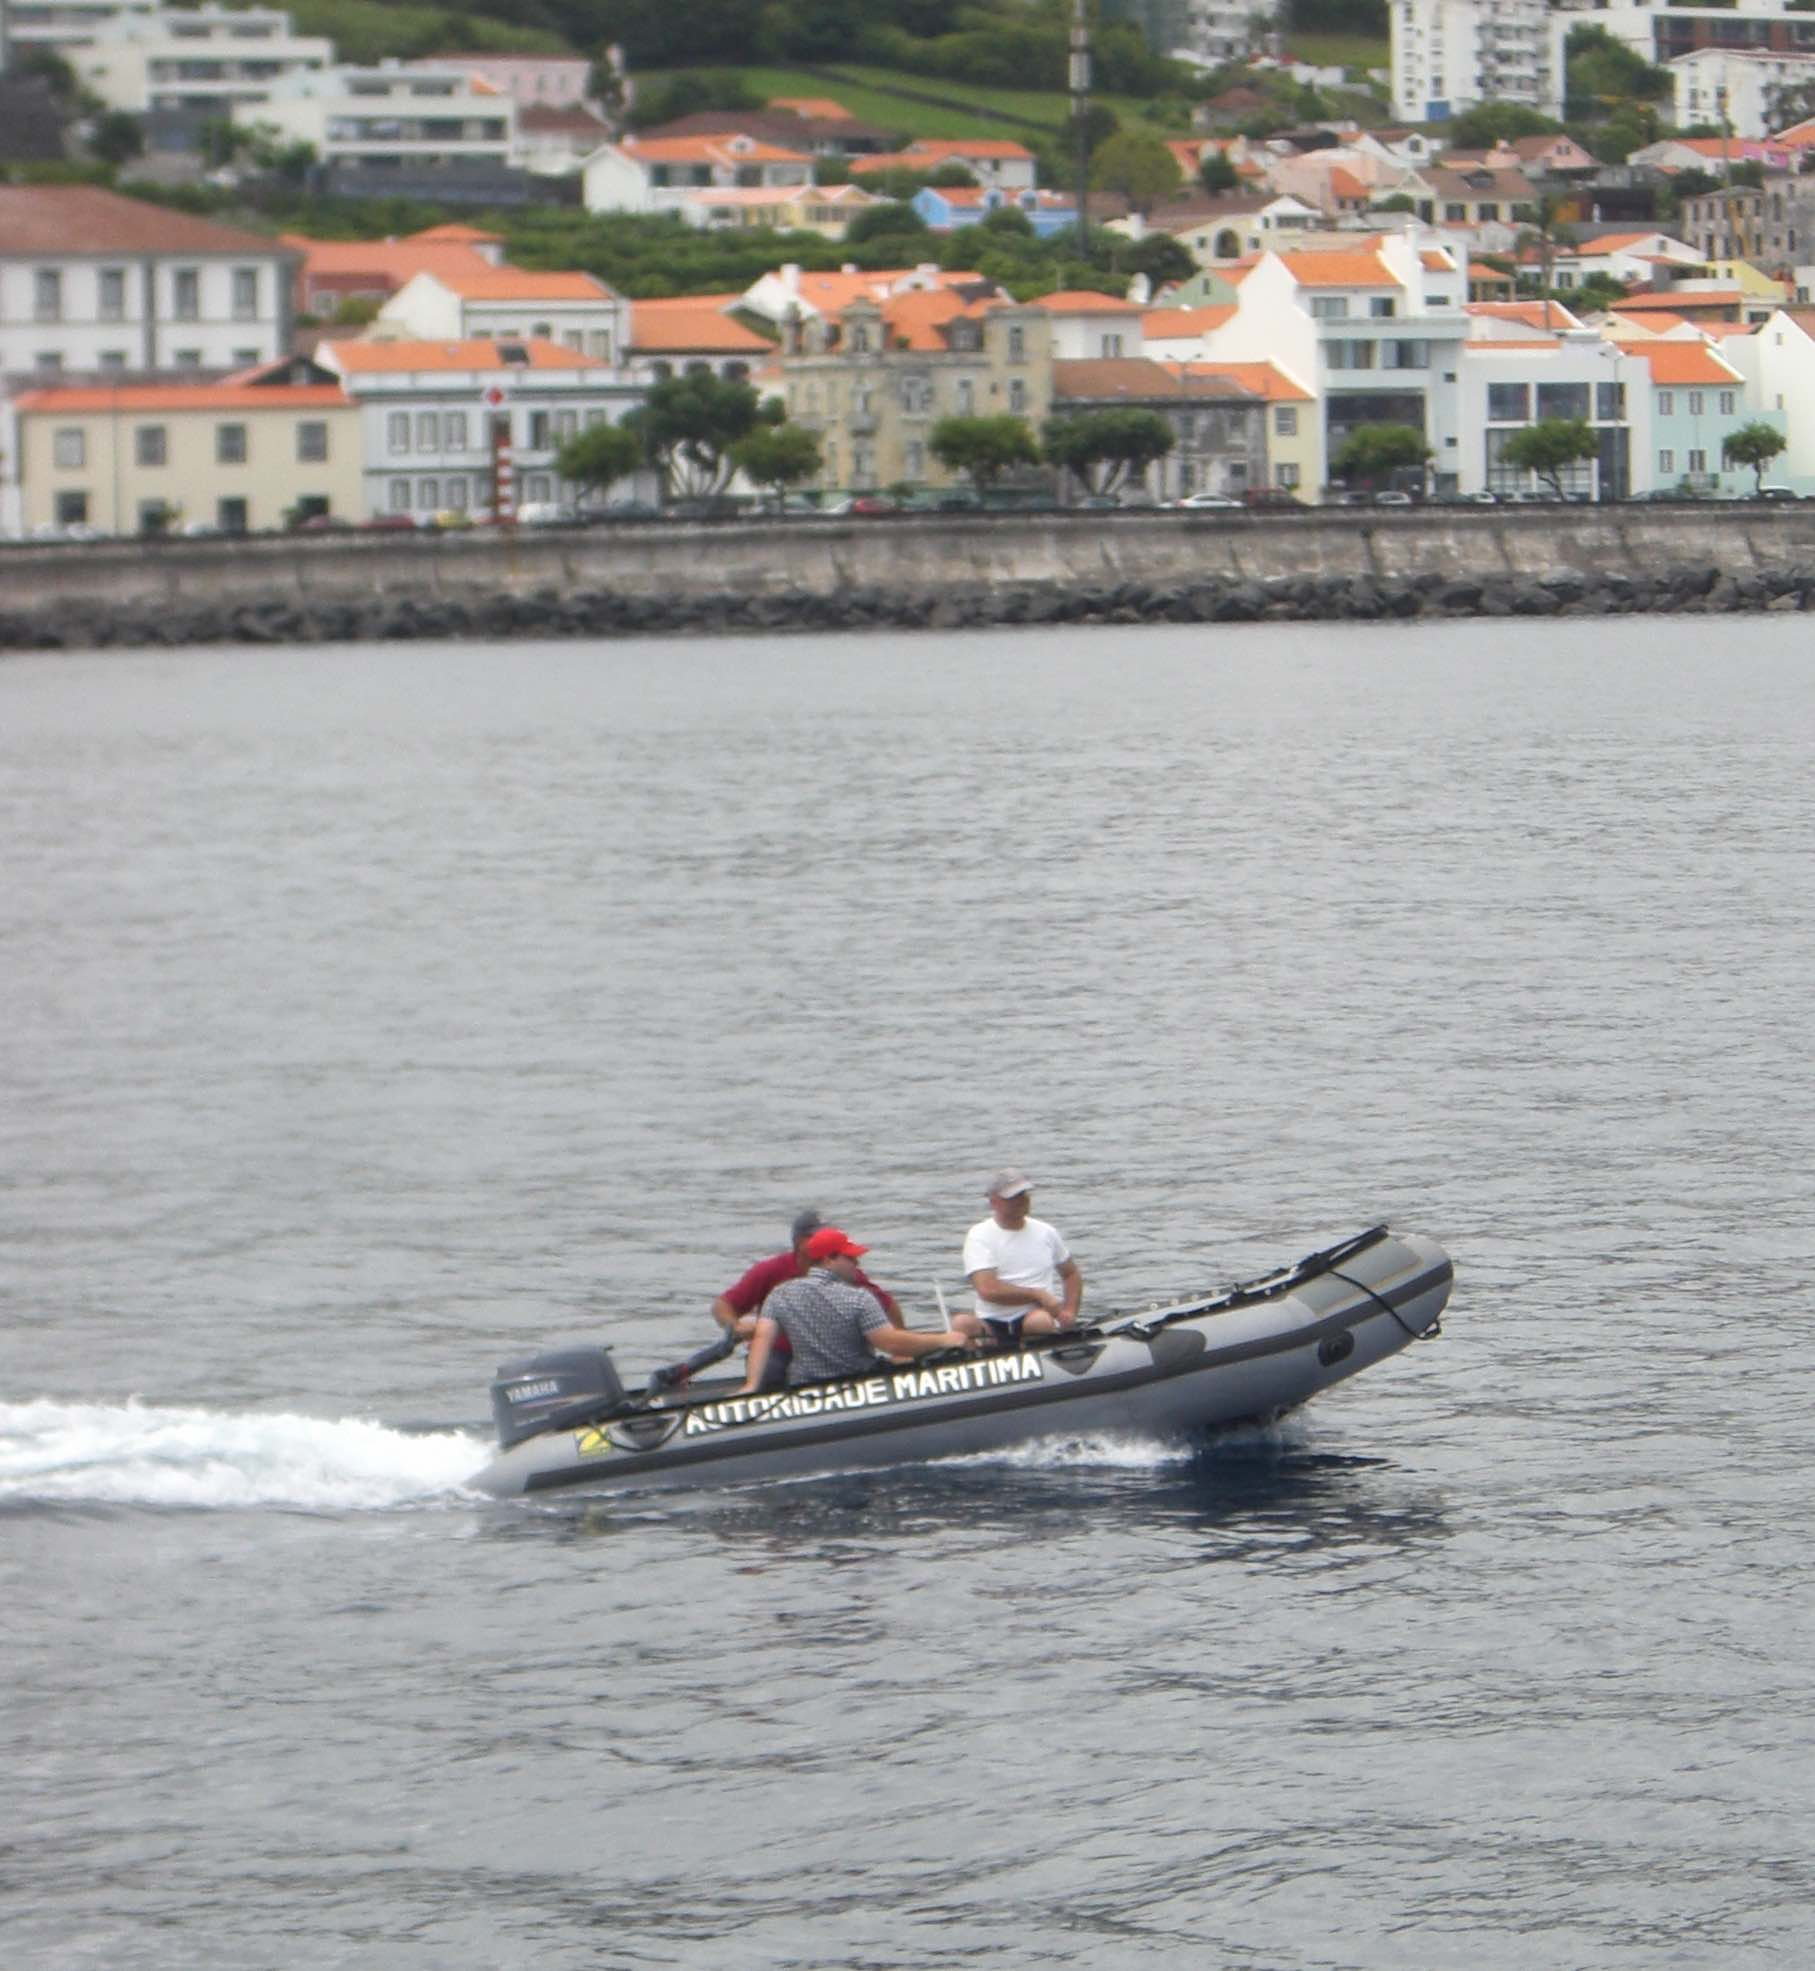 Heading out of the harbor to test an LAUV, João Tasso and Bruno on a Maritime Police RHIB.